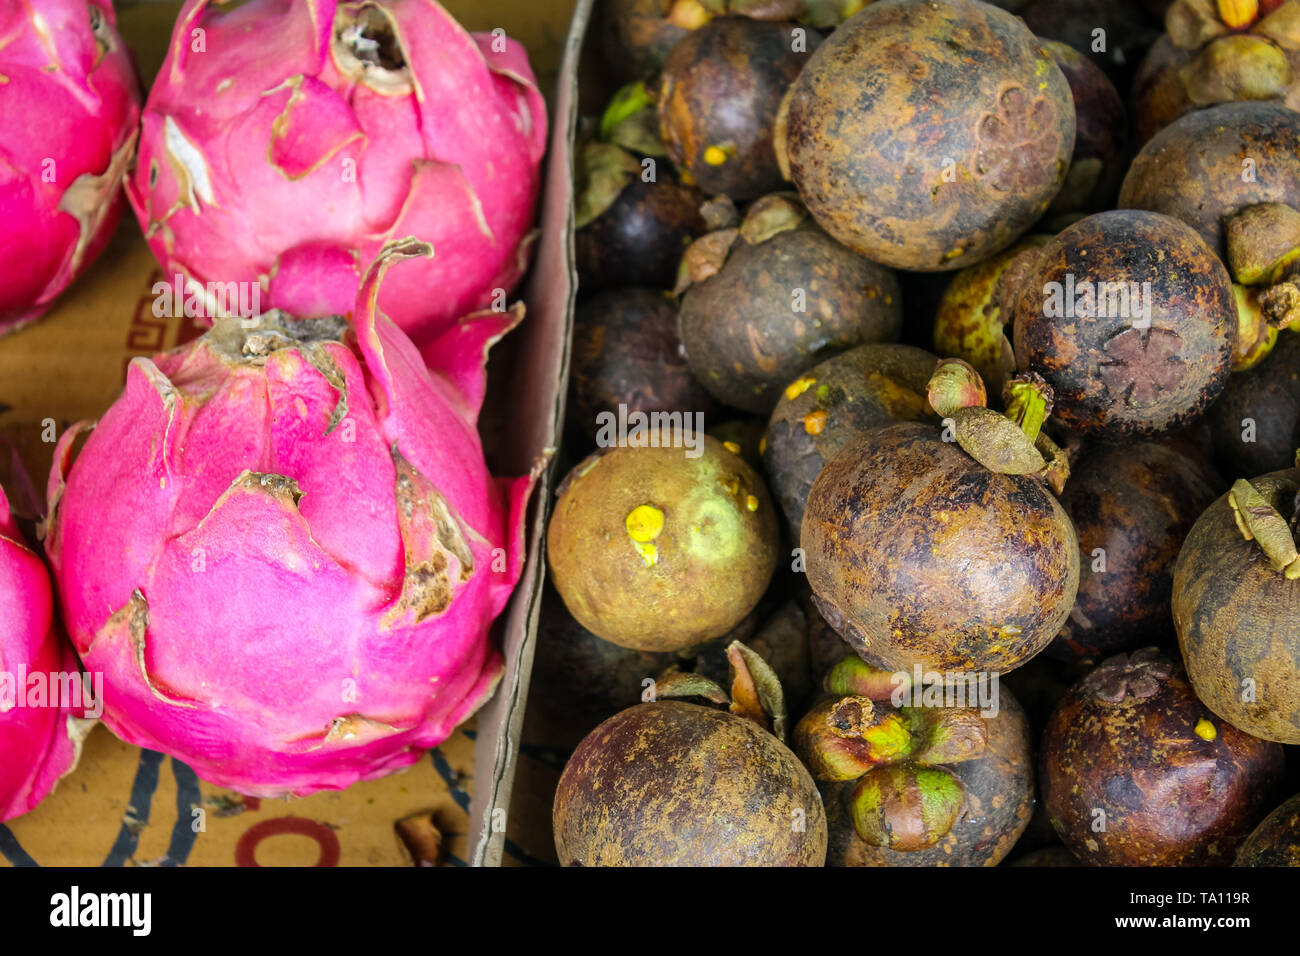 Pile of mangosteen and Dragonfruit. Mangosteen or purple mangosteen is a tropical evergreen tree with edible fruit native to Island Southeast Asia. - Stock Image